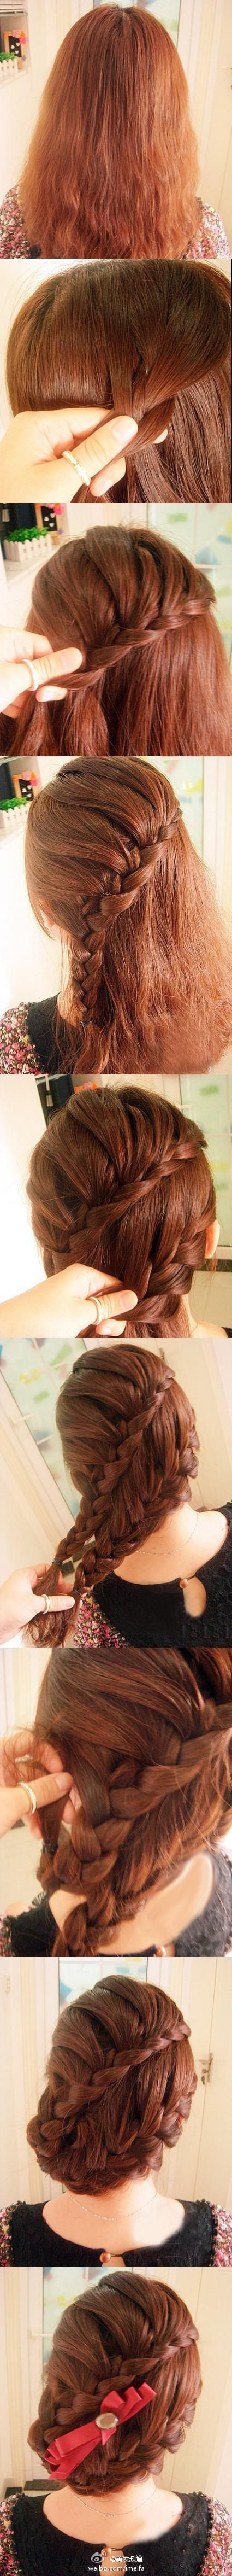 Braided Updo, I could do this!